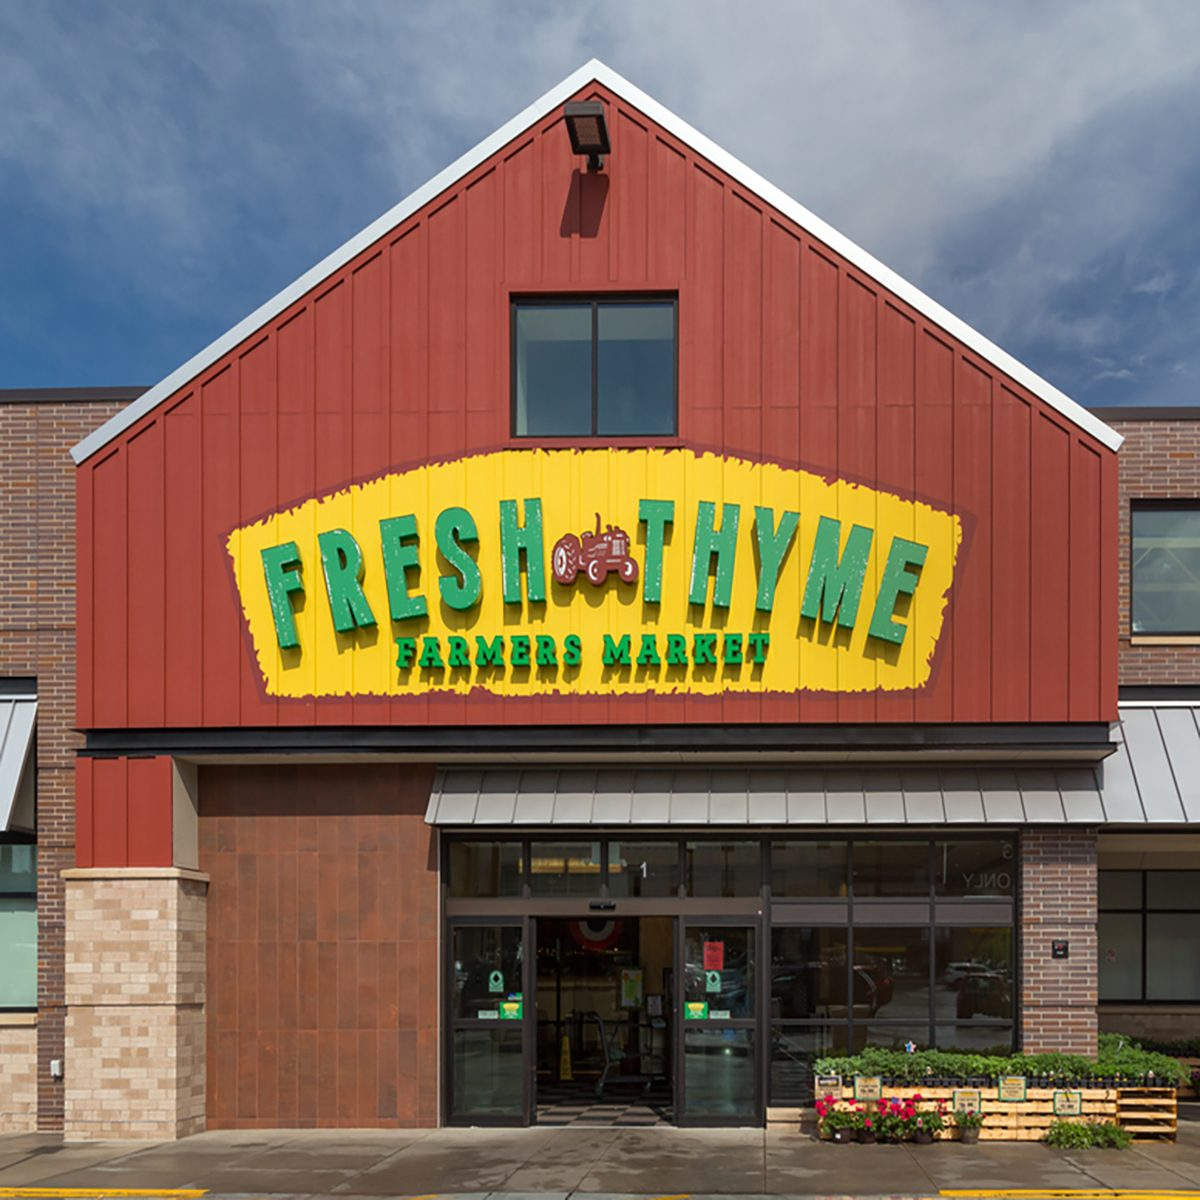 Fresh Thyme Farmers Market exterior and logo. Fresh Thyme is a chain of grocery stores in the United States.